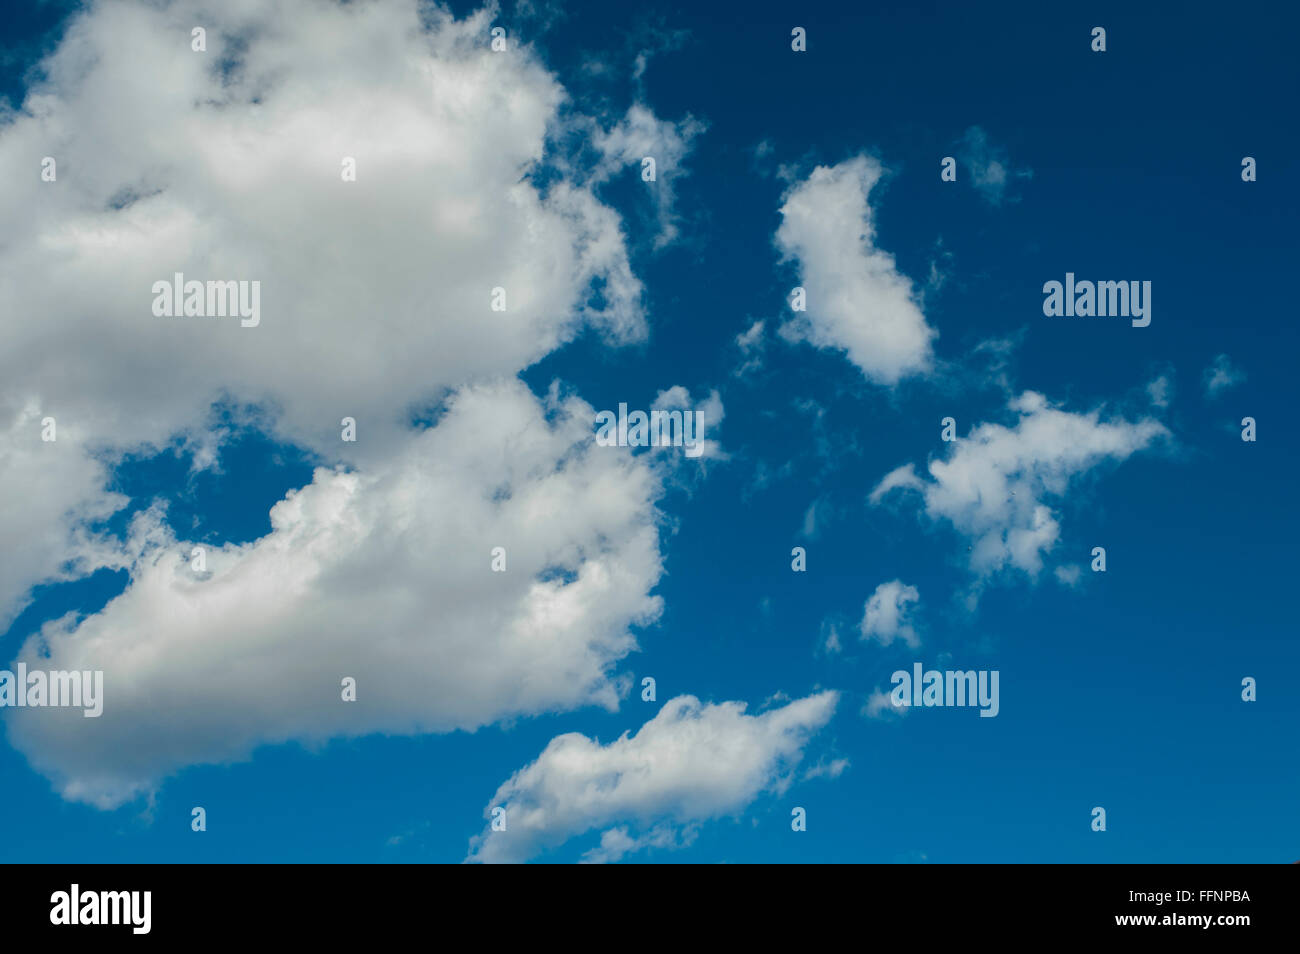 fragment of blue sky with fluffy,patterned clouds - Stock Image